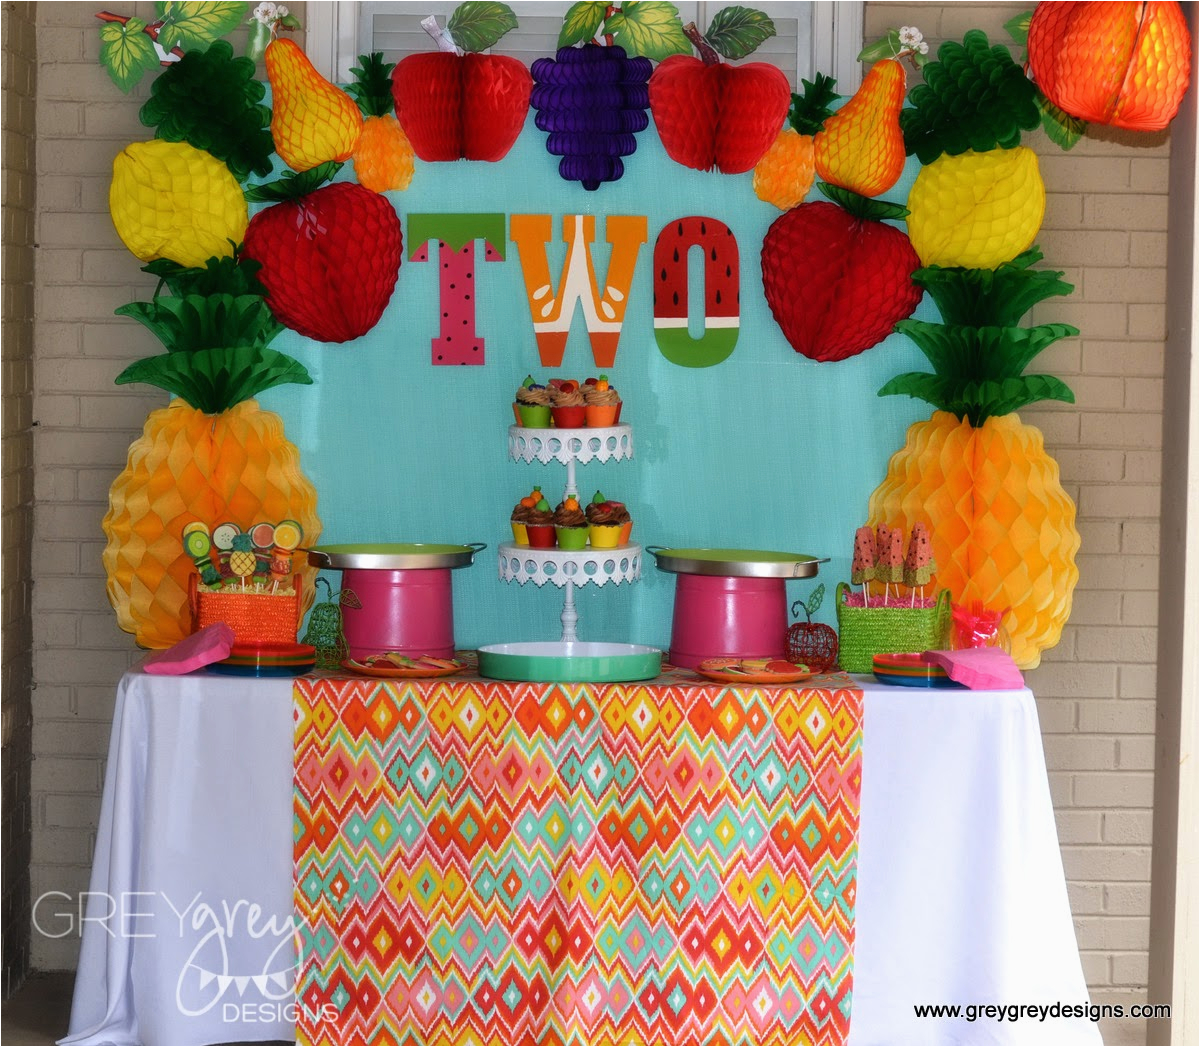 2 Year Old Birthday Party Decorations Idea Fruit Theme